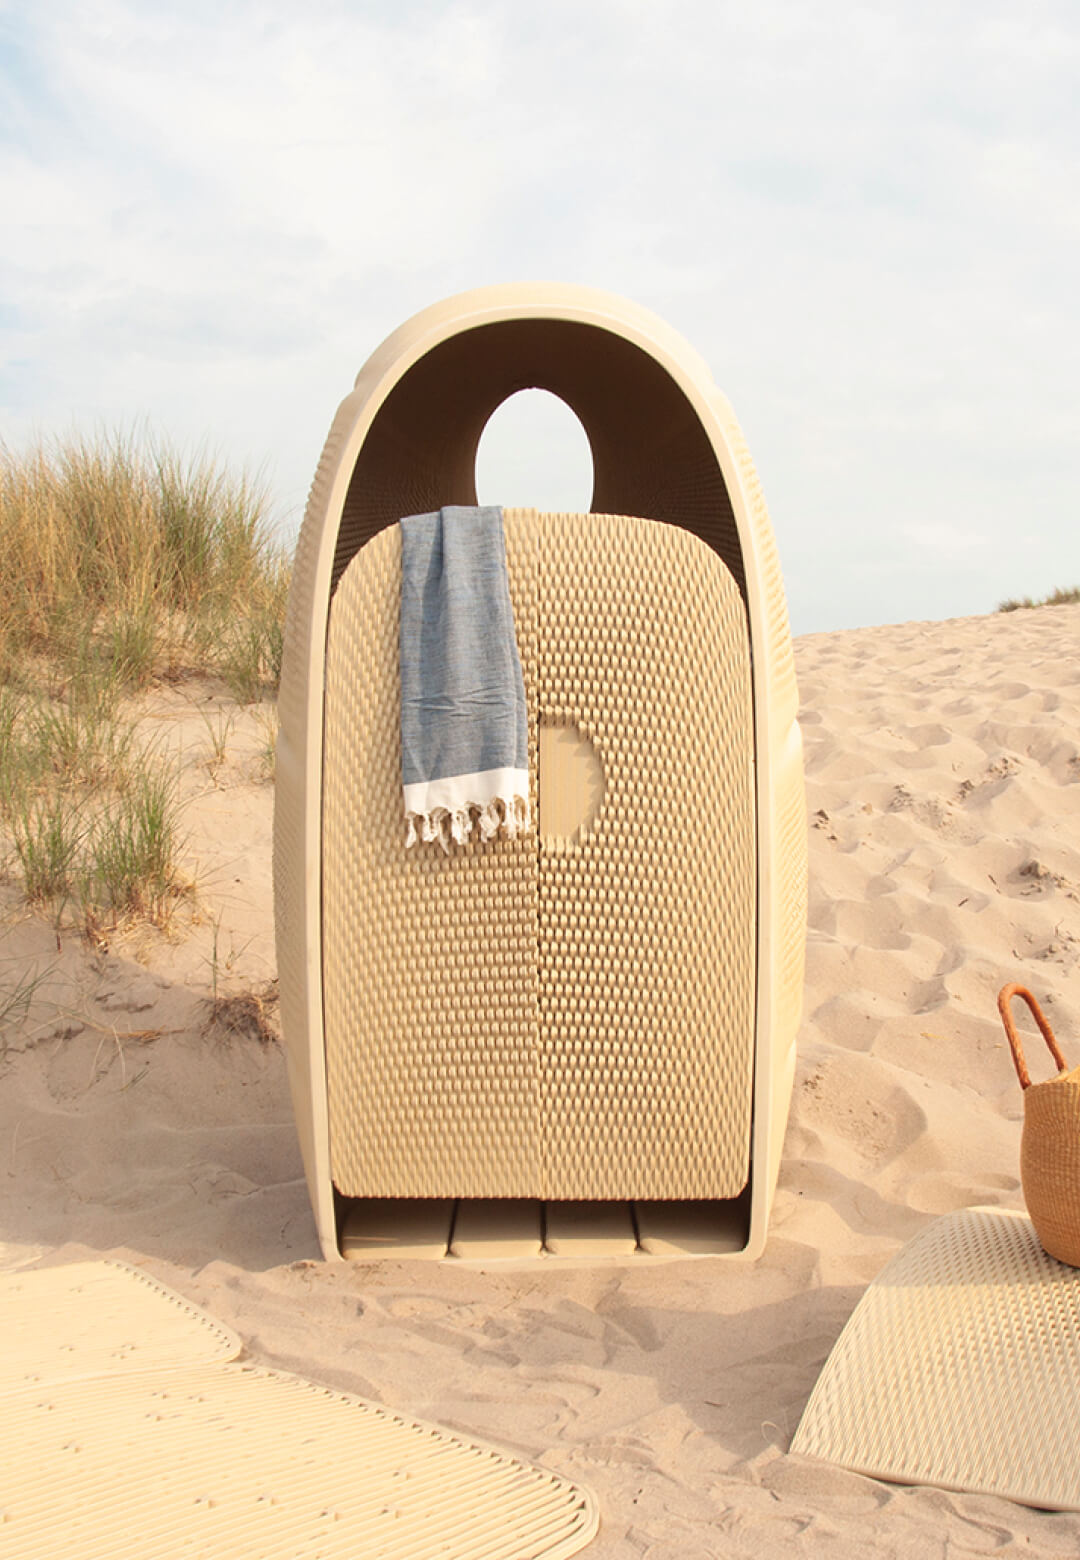 Rotterdam-based design studio The New Raw gives a new life to discarded plastic by creating The Elements, a limited-edition beach furniture collection | The Elements | The New Raw | STIRworld